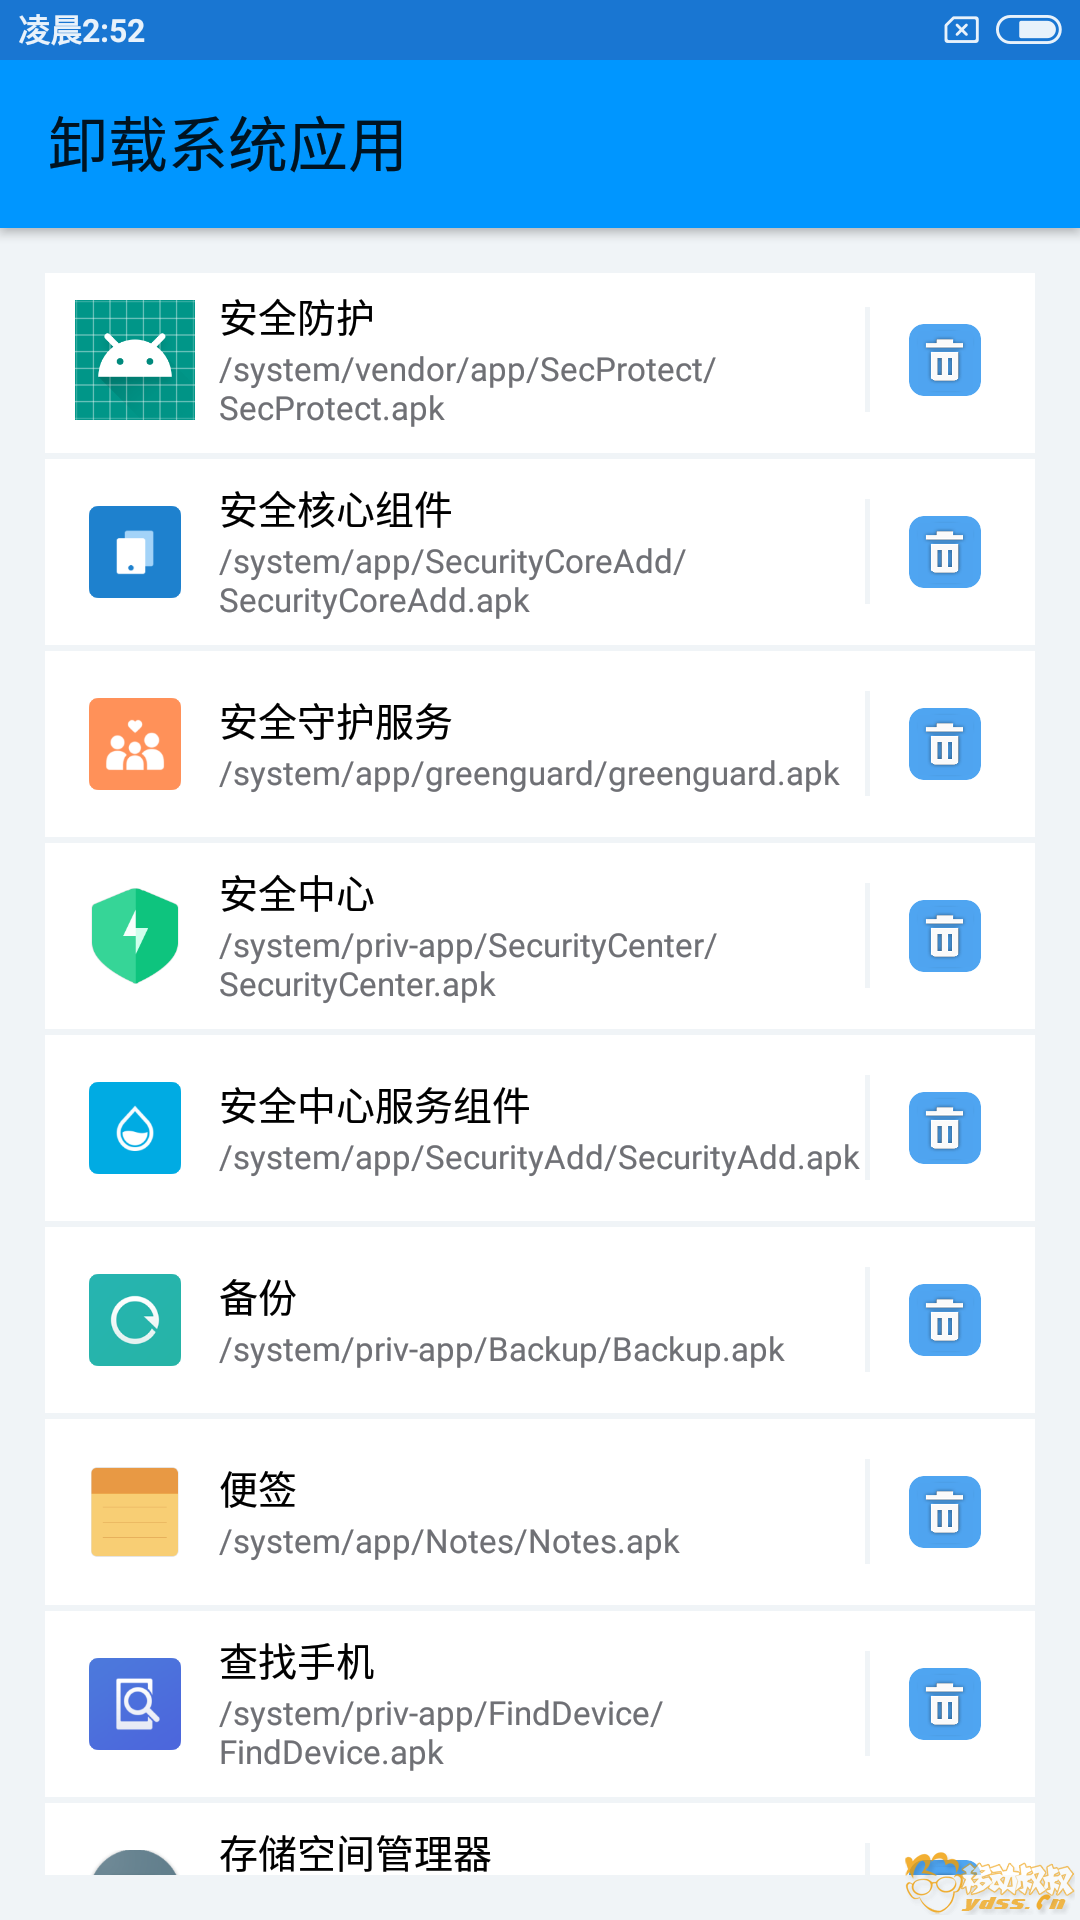 Screenshot_1971-01-03-02-52-51-125_com.zhanhong.tools.png